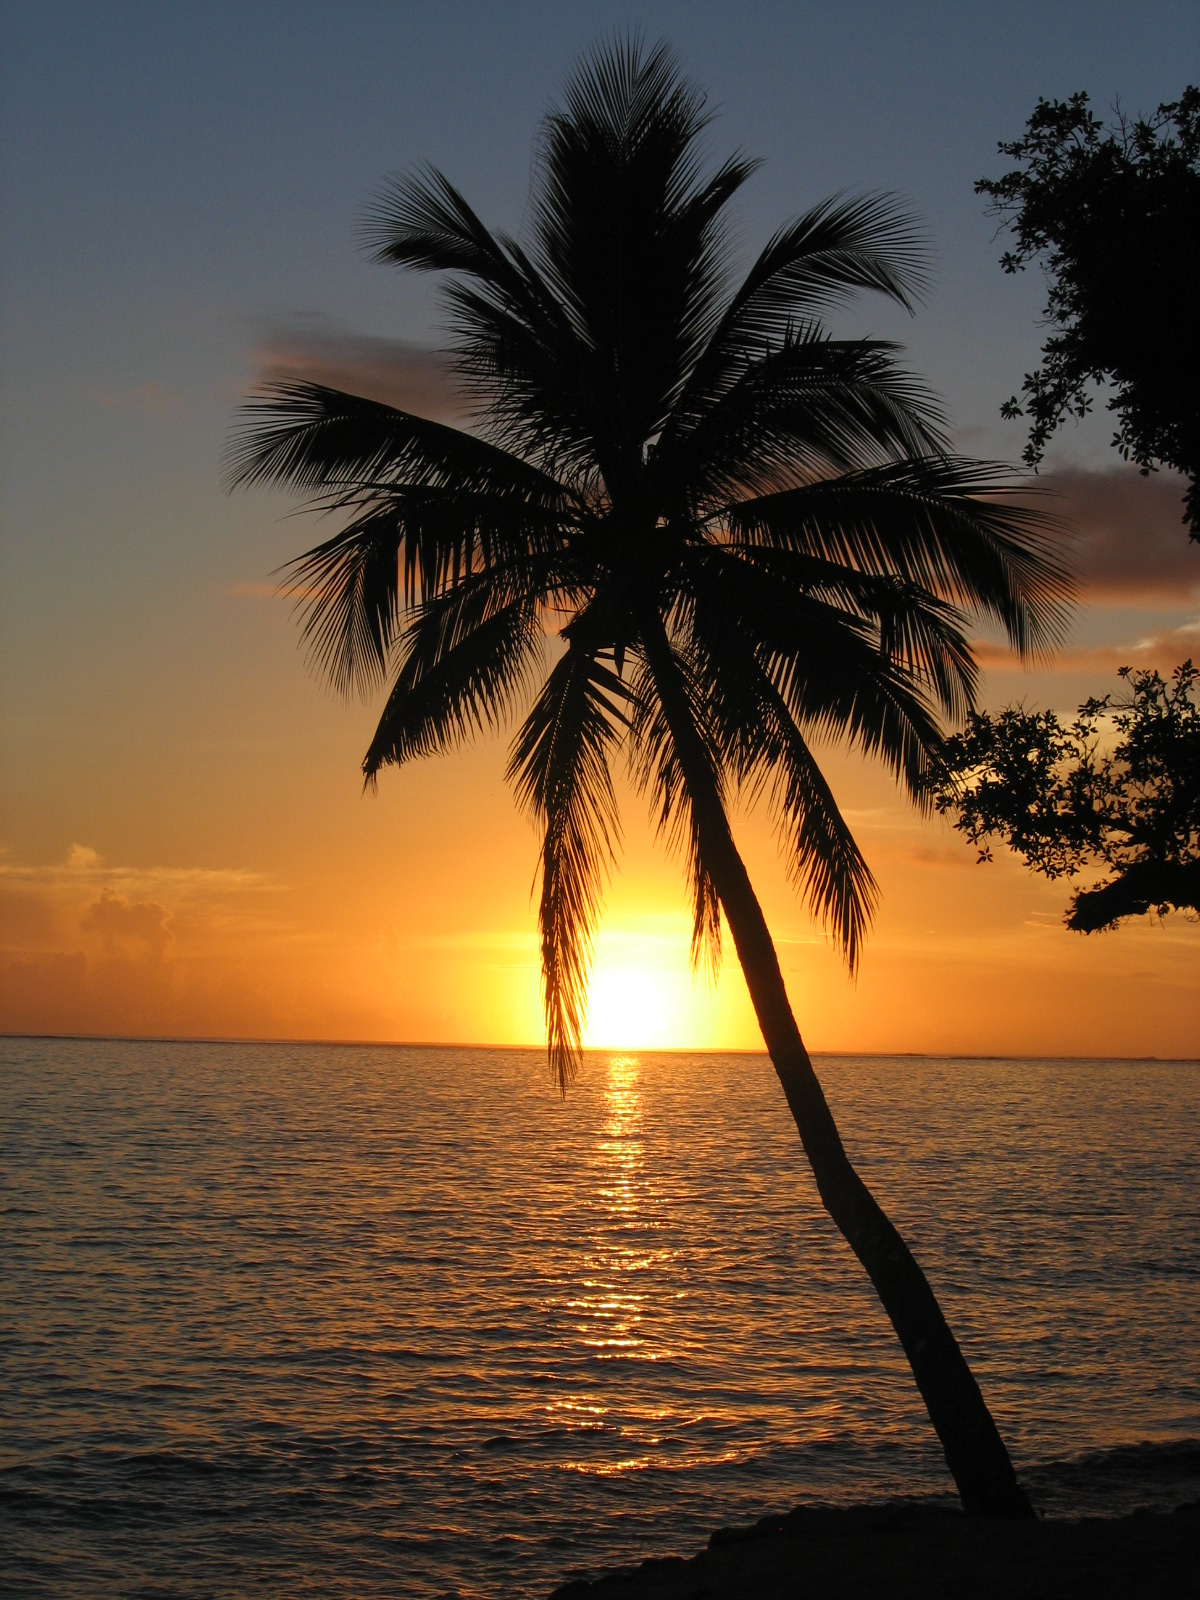 Palm Trees Beach Sunset Image Gallery